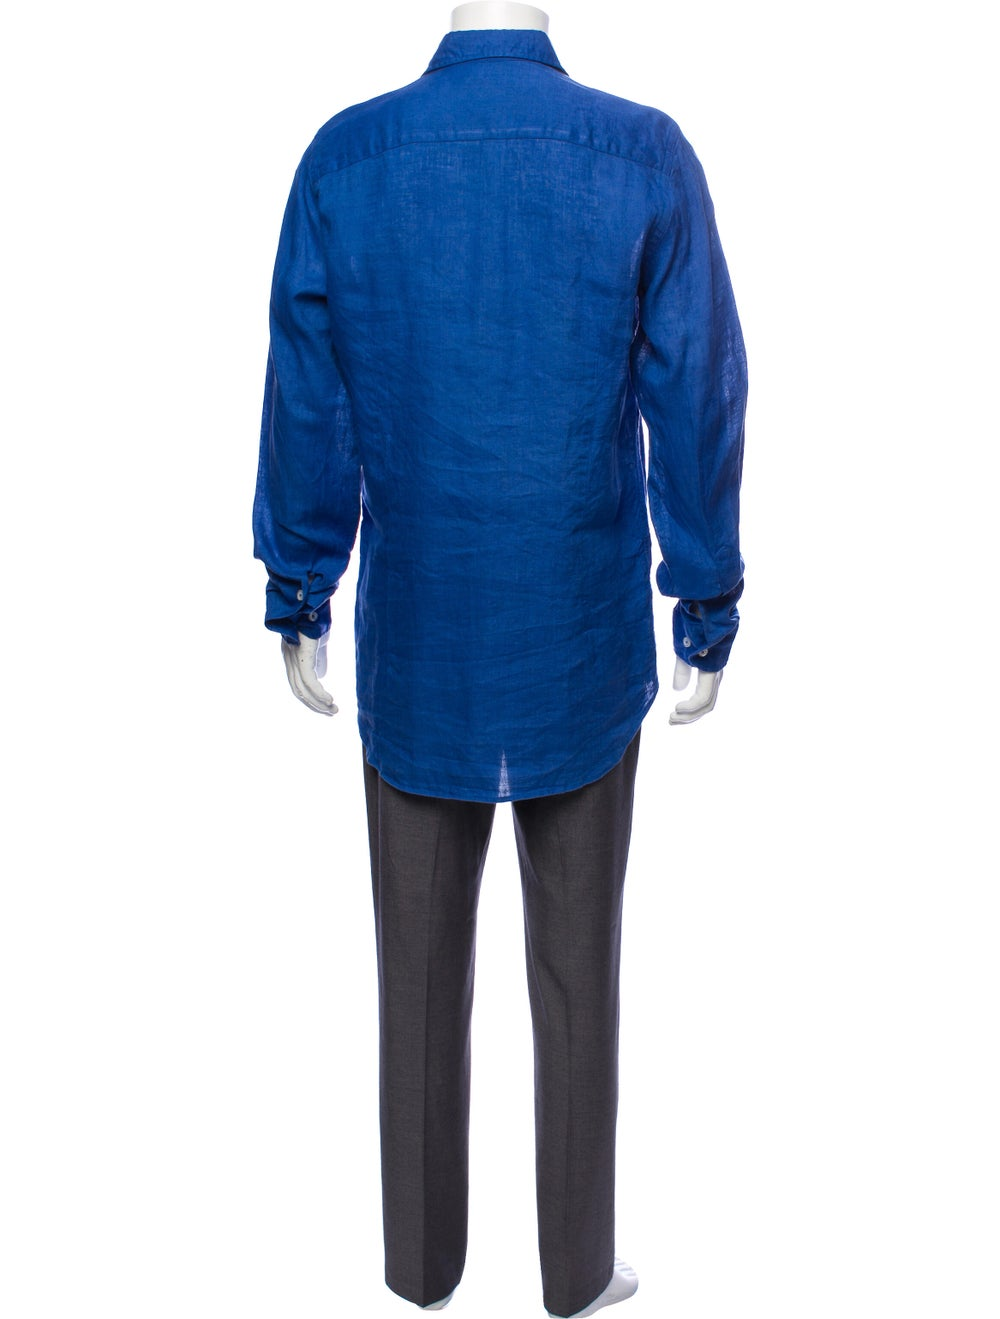 Piattelli Linen Button-Up Shirt blue - image 3